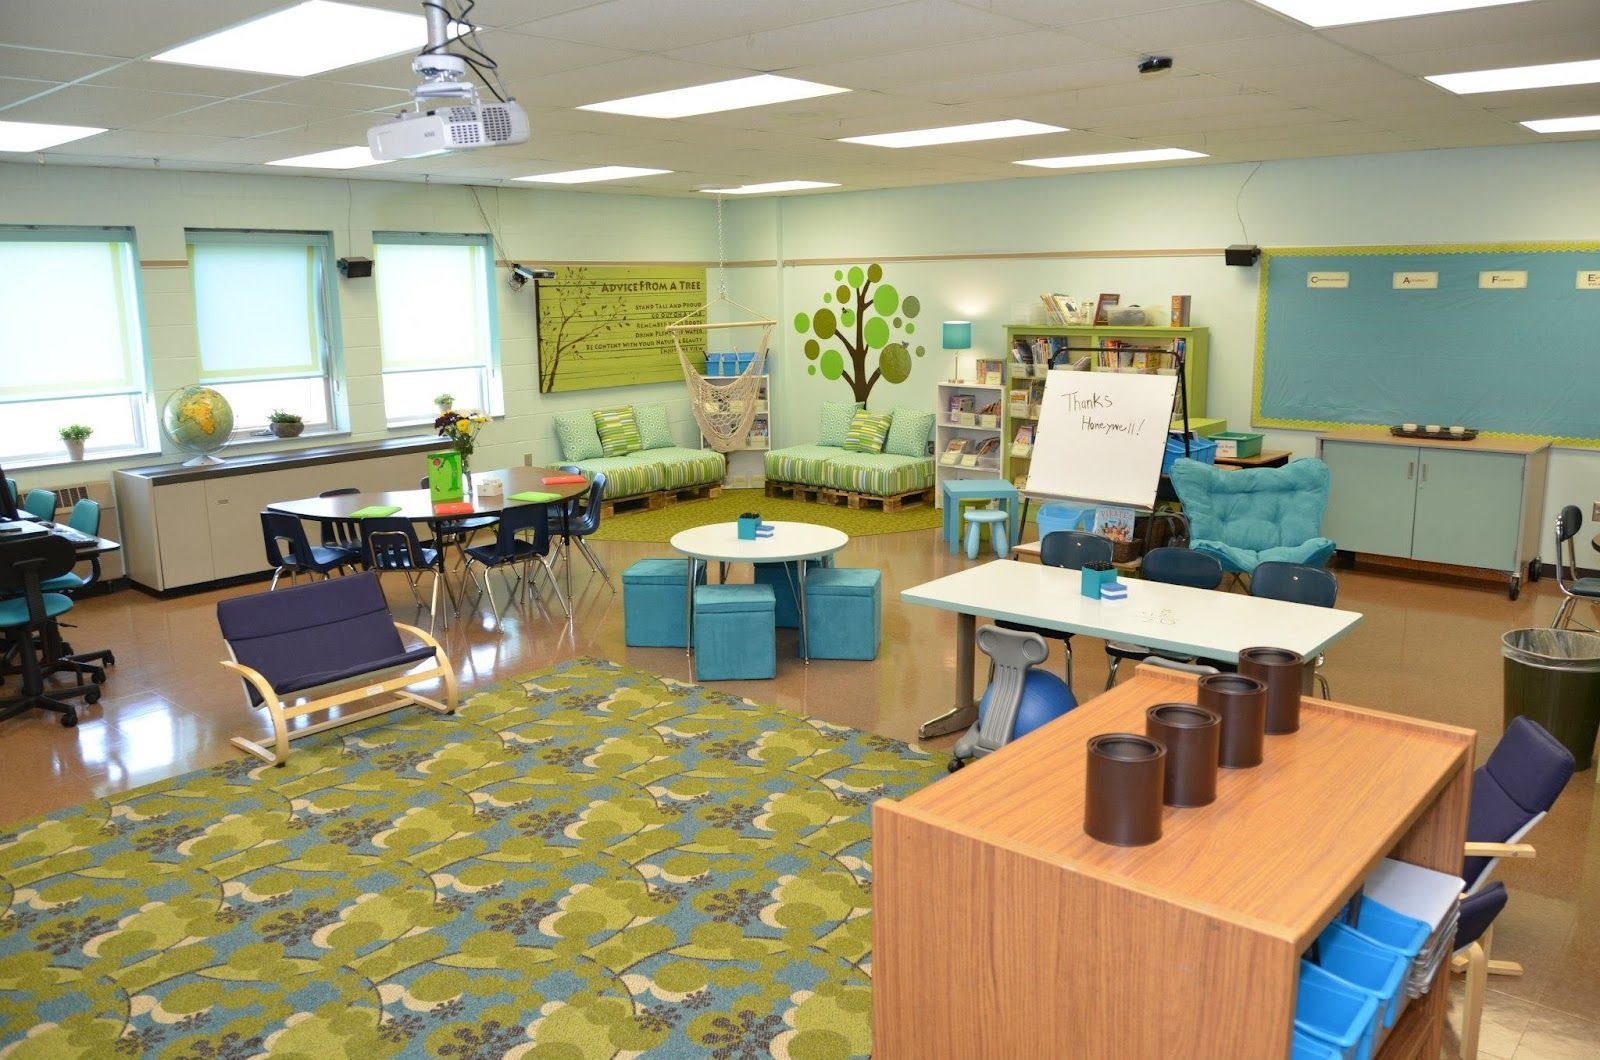 Classroom Simple: Classroom Makeover Love the peacefulness of the ...